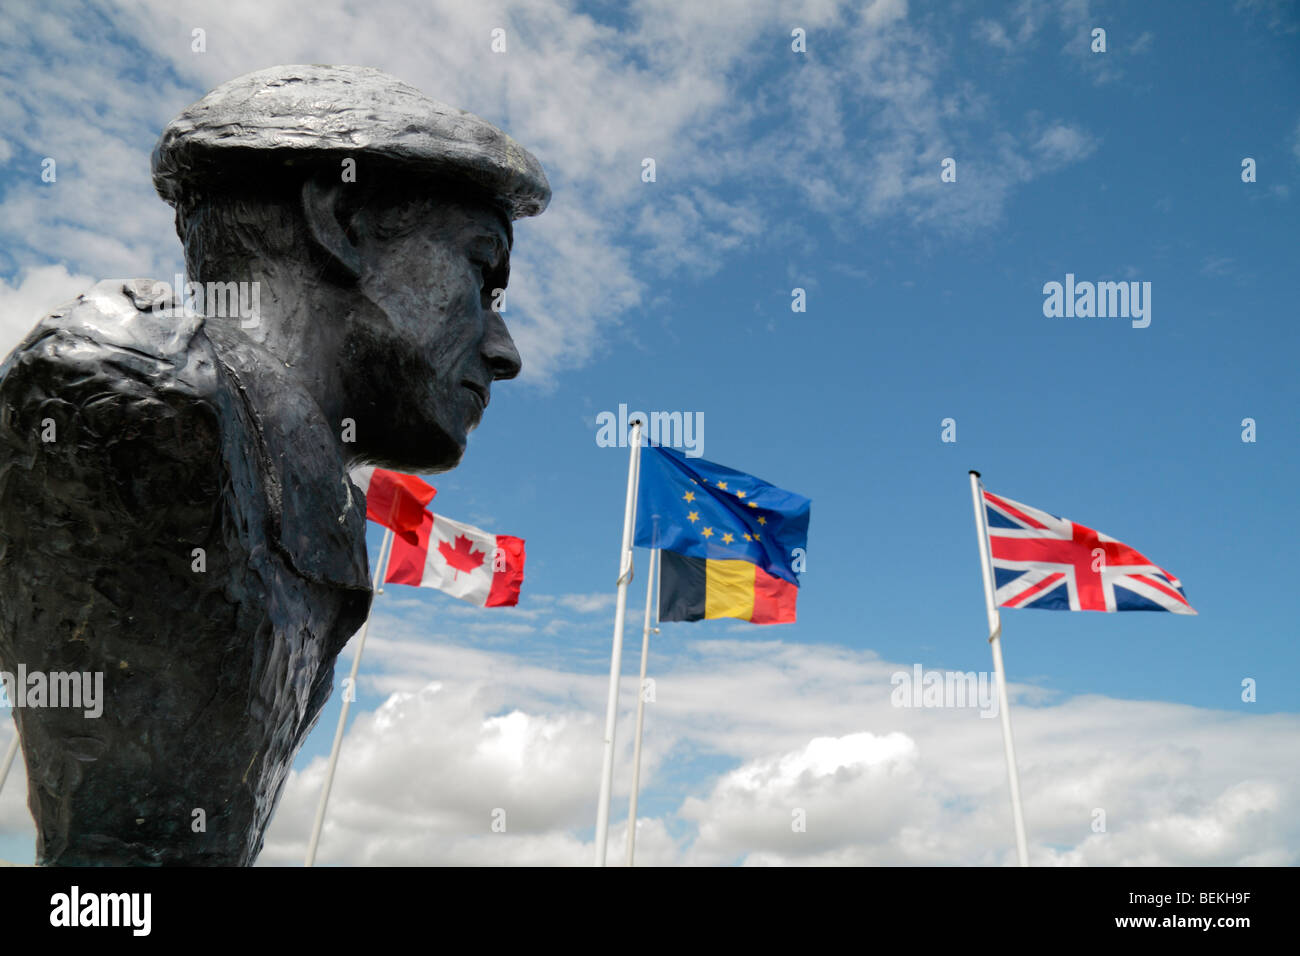 The EU and World War Two flags fly beside the bust to Lieutenant Colonel T Otway at the German Battery at Merville, Stock Photo